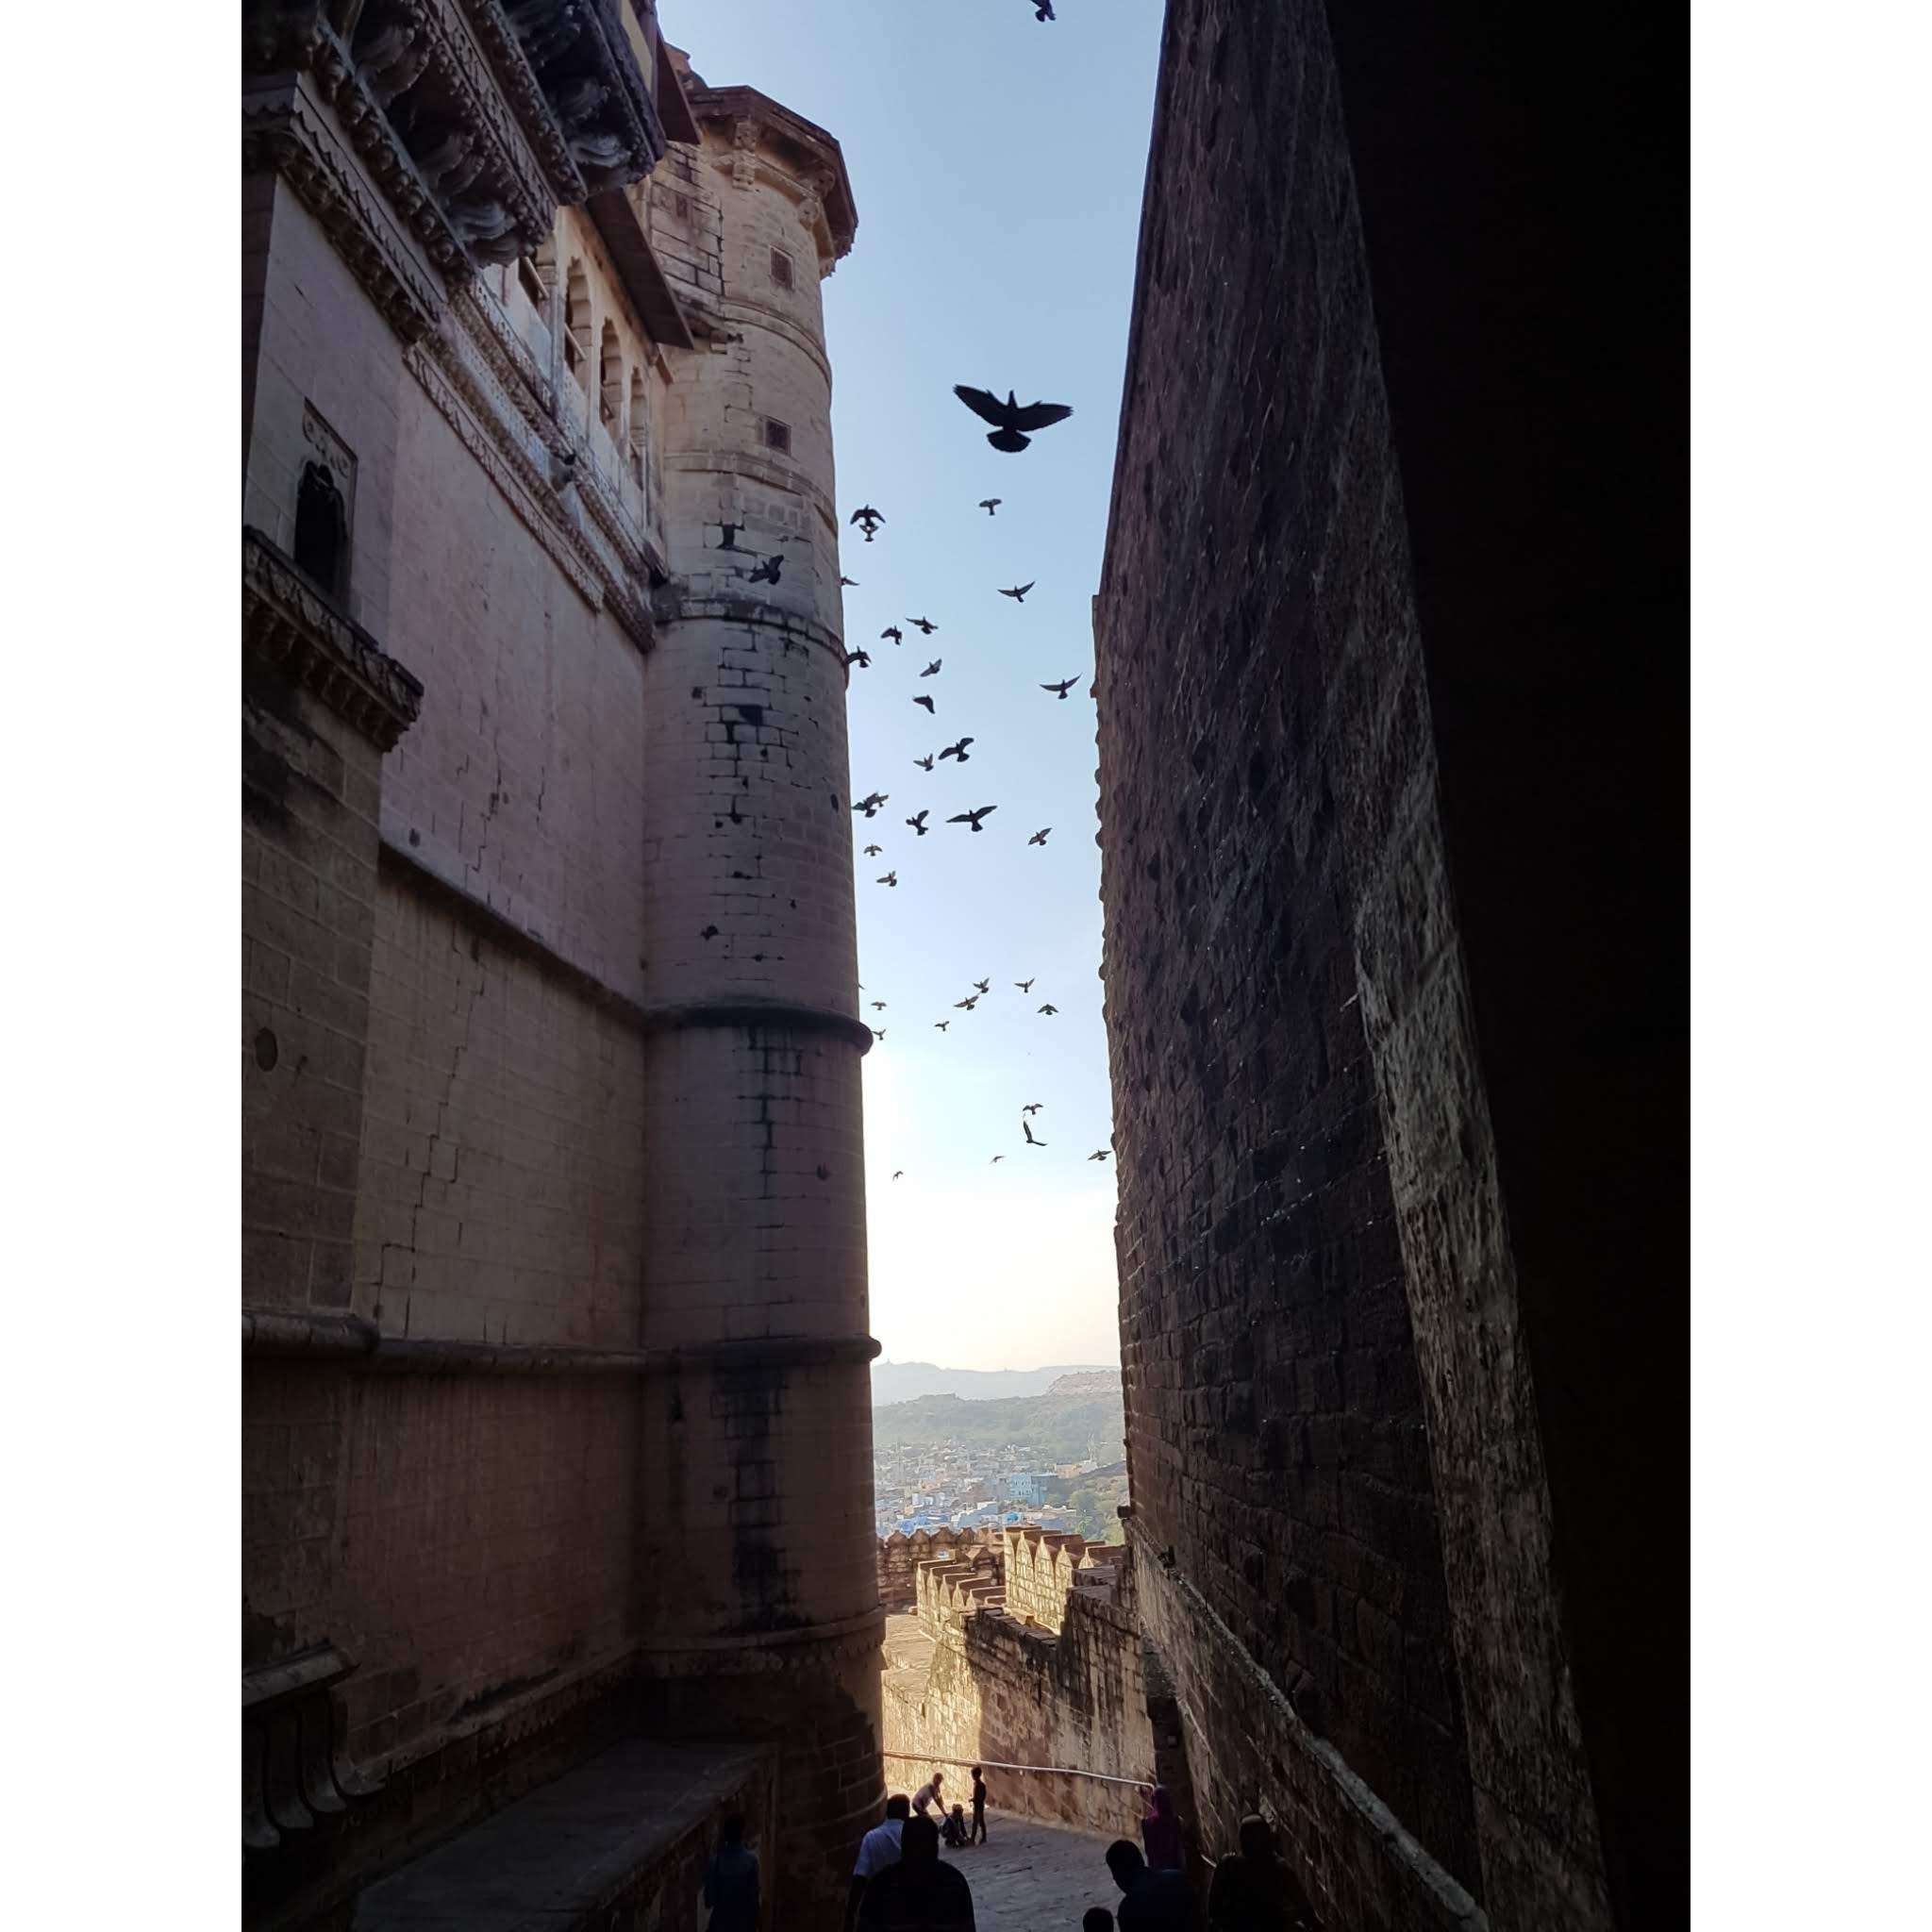 Inside Mehrangarh Fort